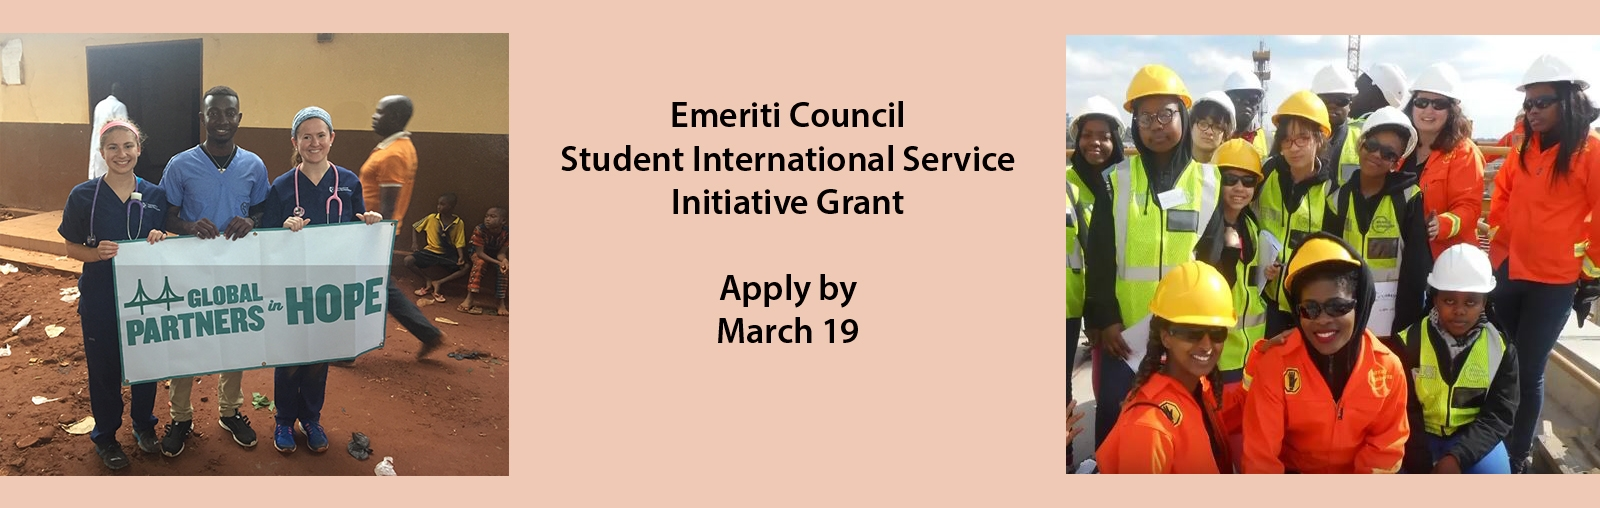 Apply for ECSISI grant by 3/19, flanked by two student groups working on projects